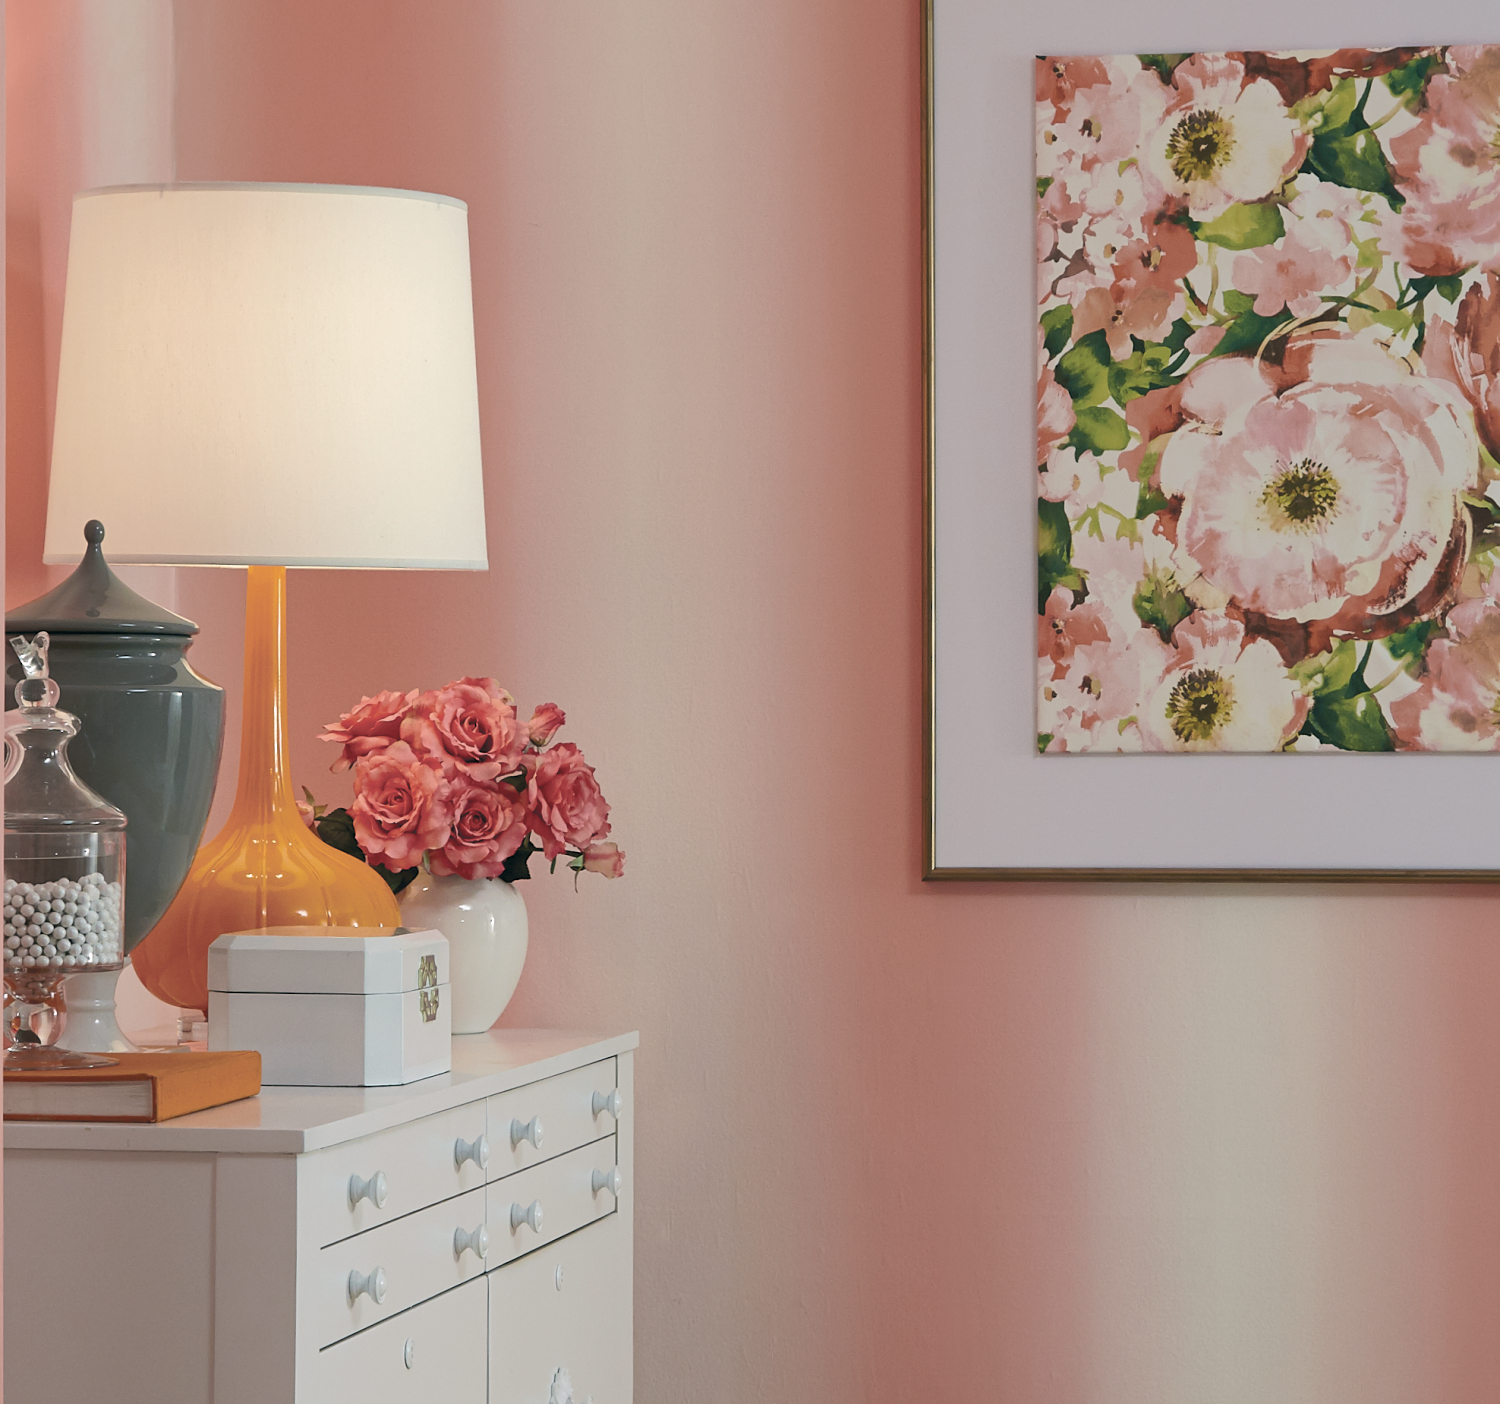 Resene Wallpaper Collection CLY966 from   Resene ColorShop   s .